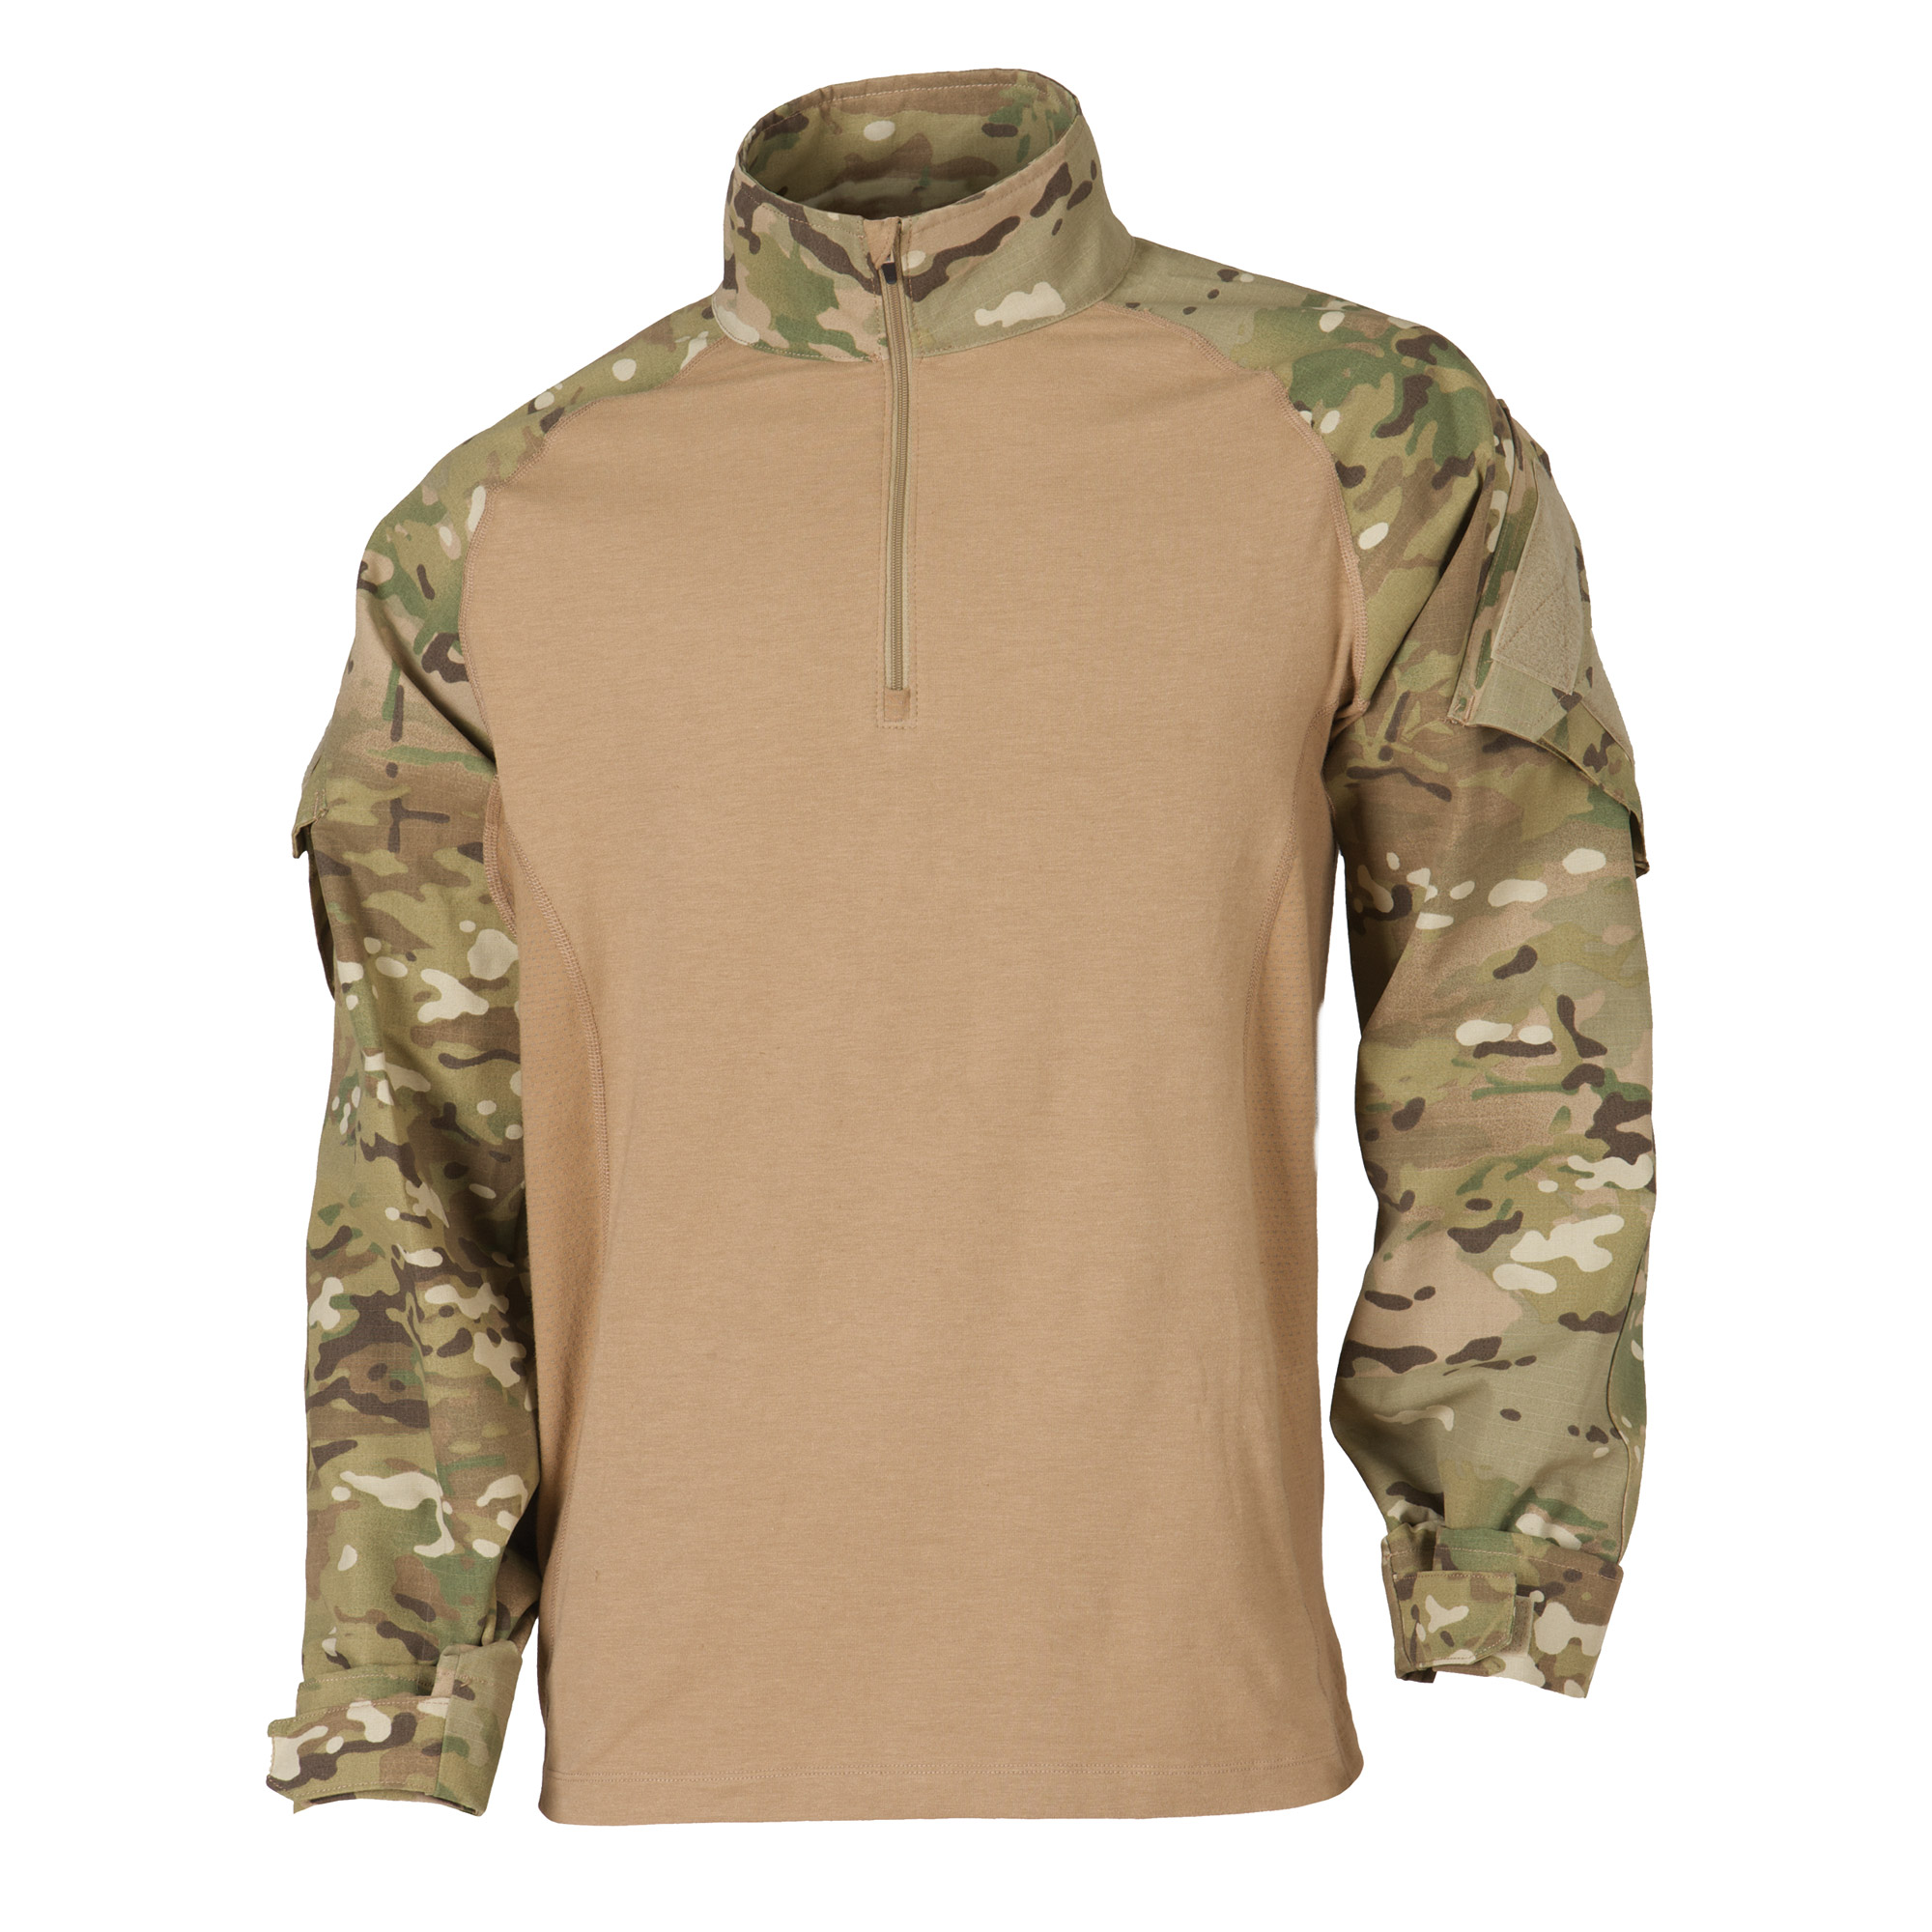 5.11 TDU Rapid Assault Shirt - MultiCam